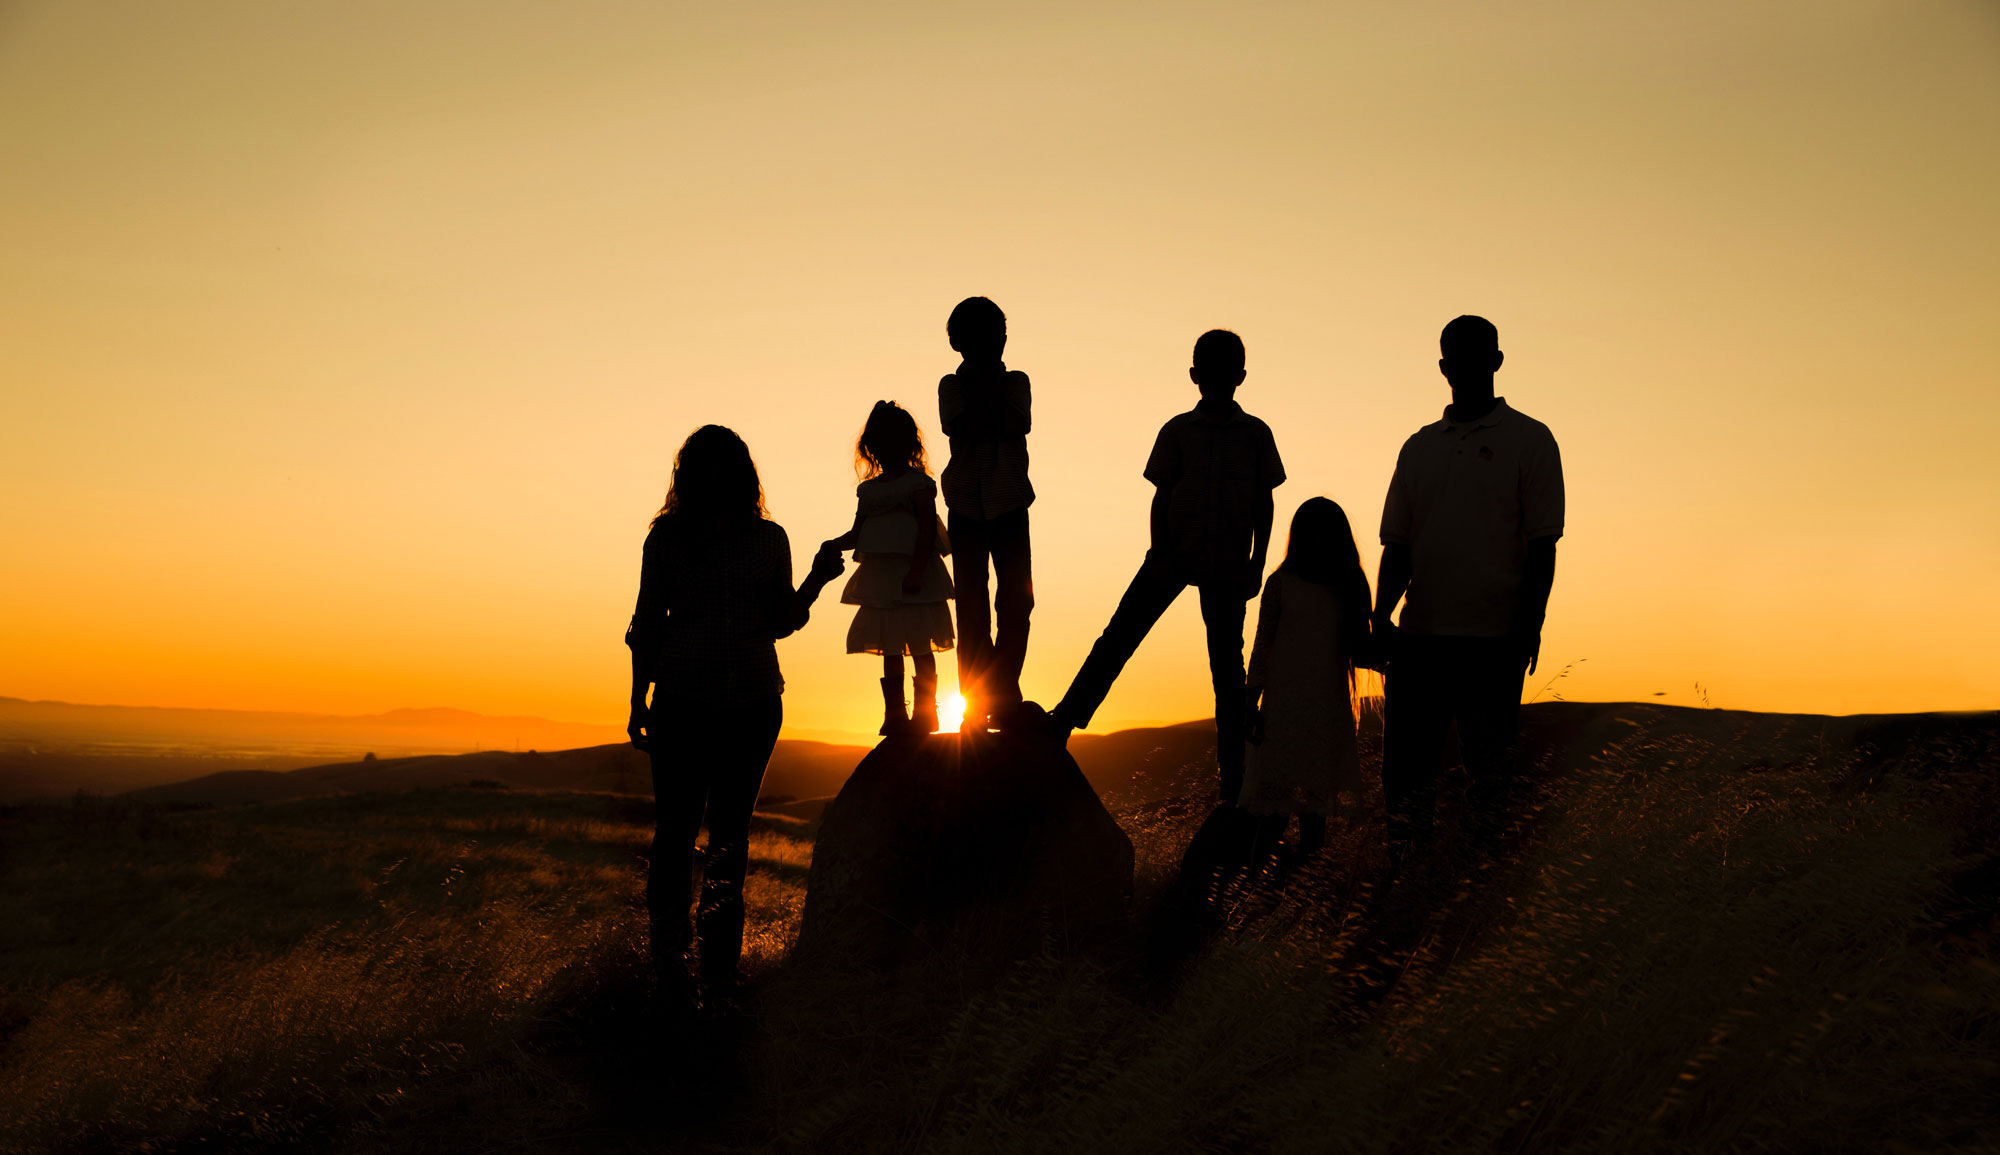 Silhouettes of students staring at the ocean at sunset.